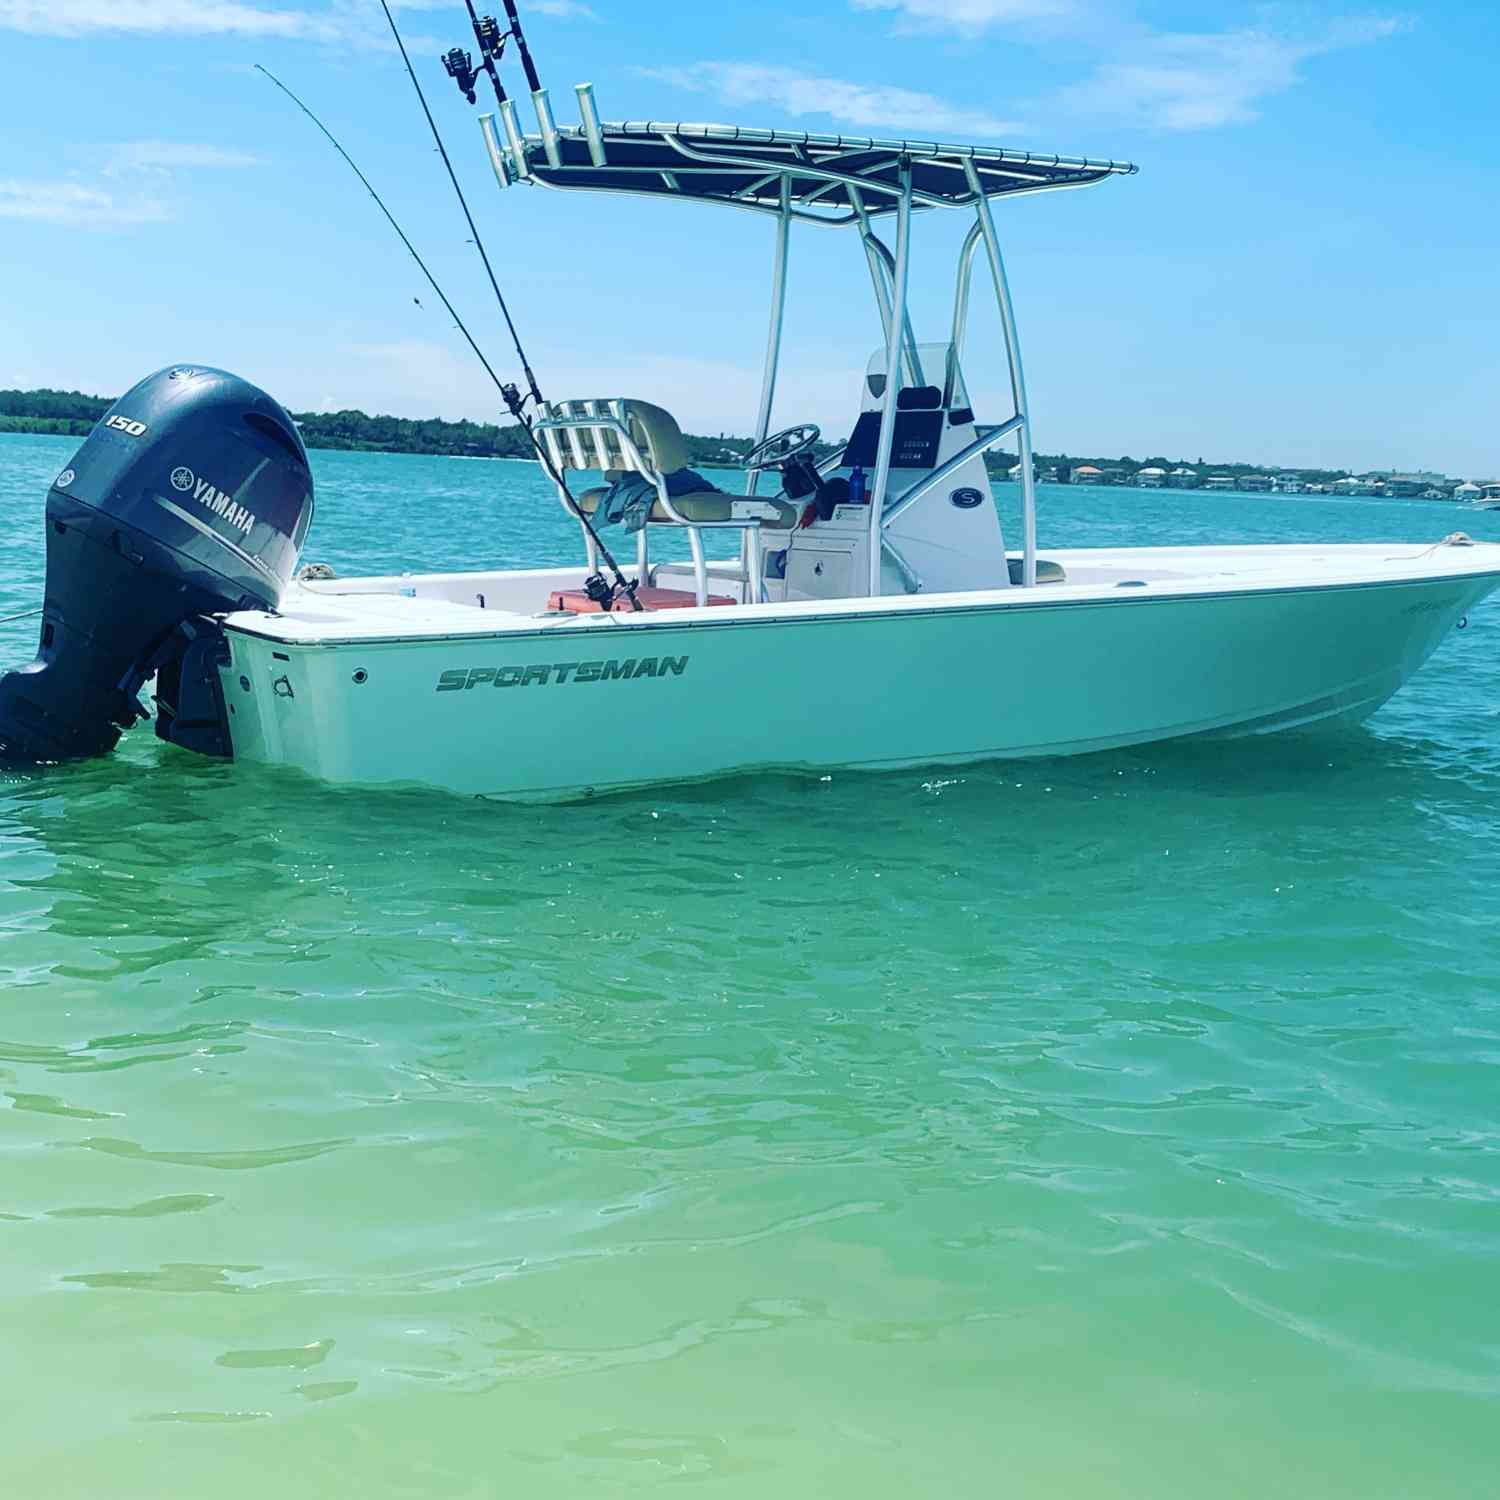 Title: Sportsman 207 - On board their Sportsman Masters 207 Bay Boat - Location: one tree island in Clearwater fl. Participating in the Photo Contest #SportsmanMay2021